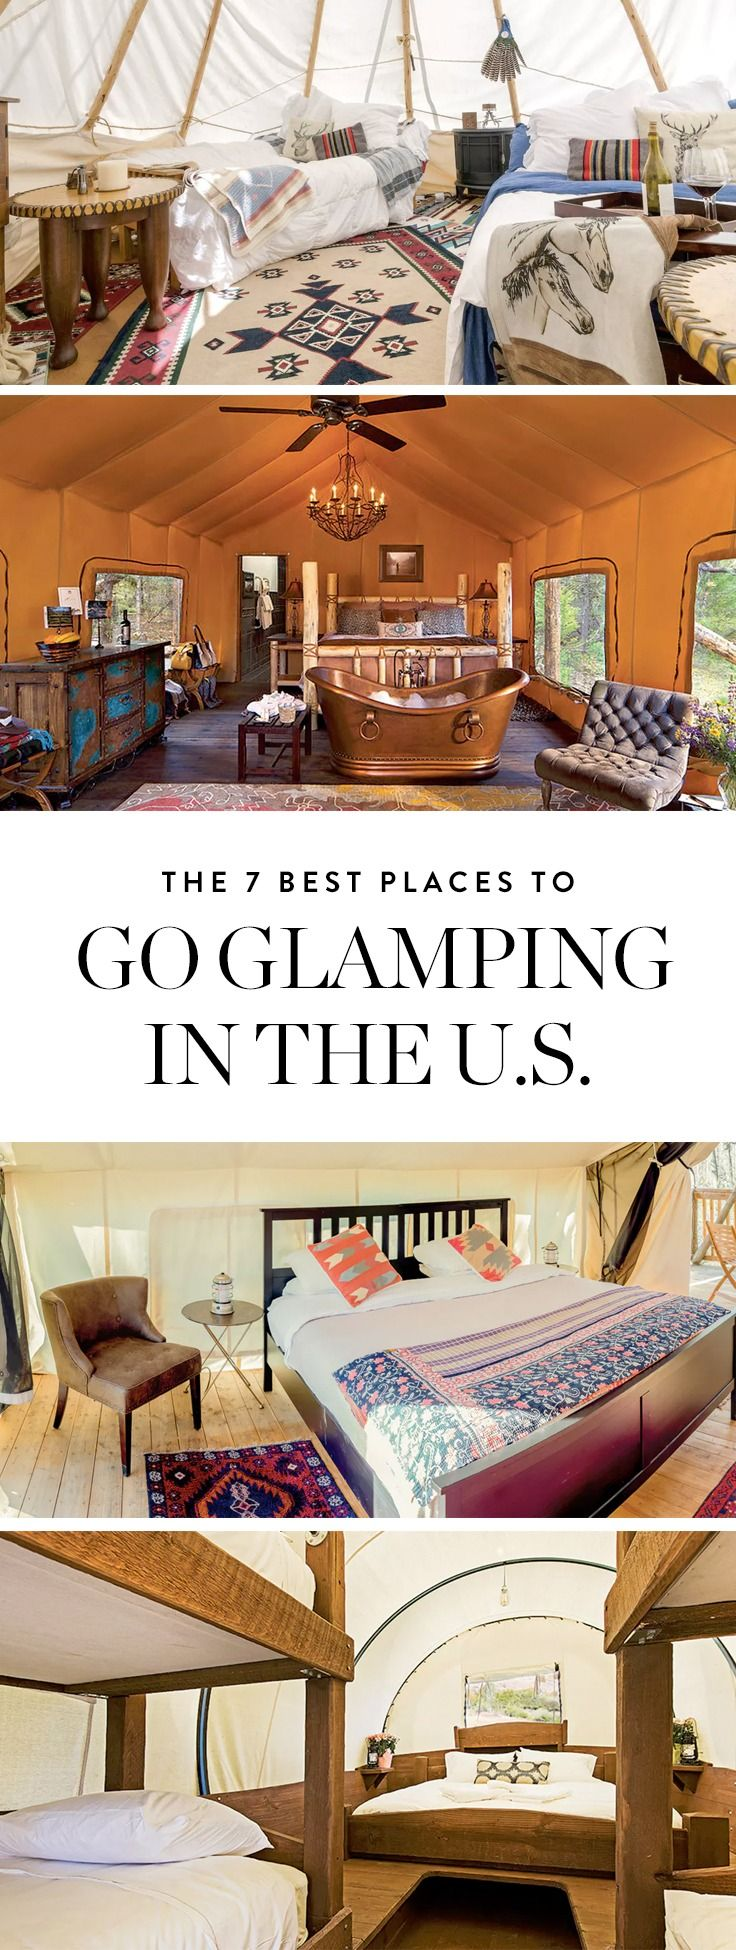 If you want to escape to nature with the luxury hot water and high thread-count sheets, go glamping at one of these 7 gorgeous campsites.